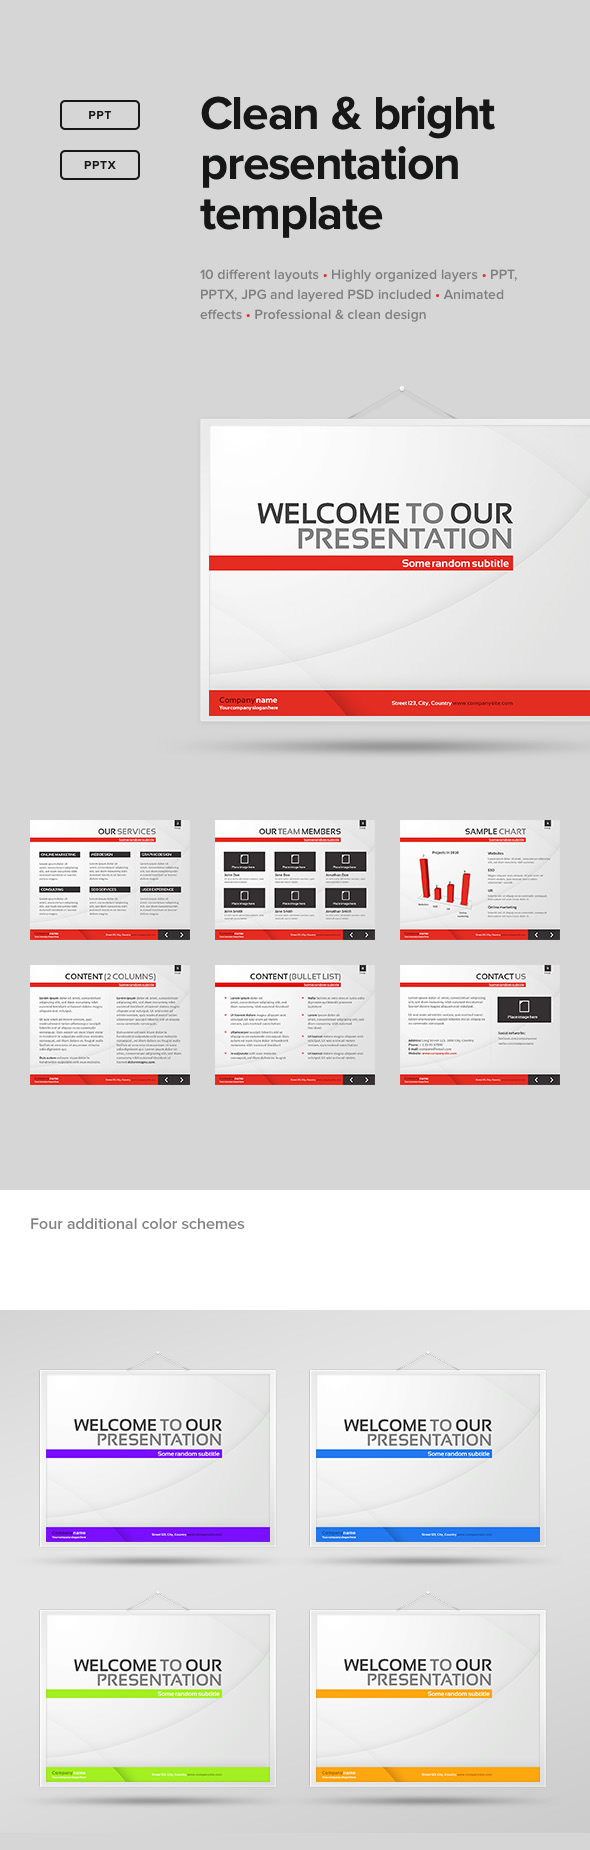 Clean & Bright Presentation Template - PowerPoint Templates Presentation Templates